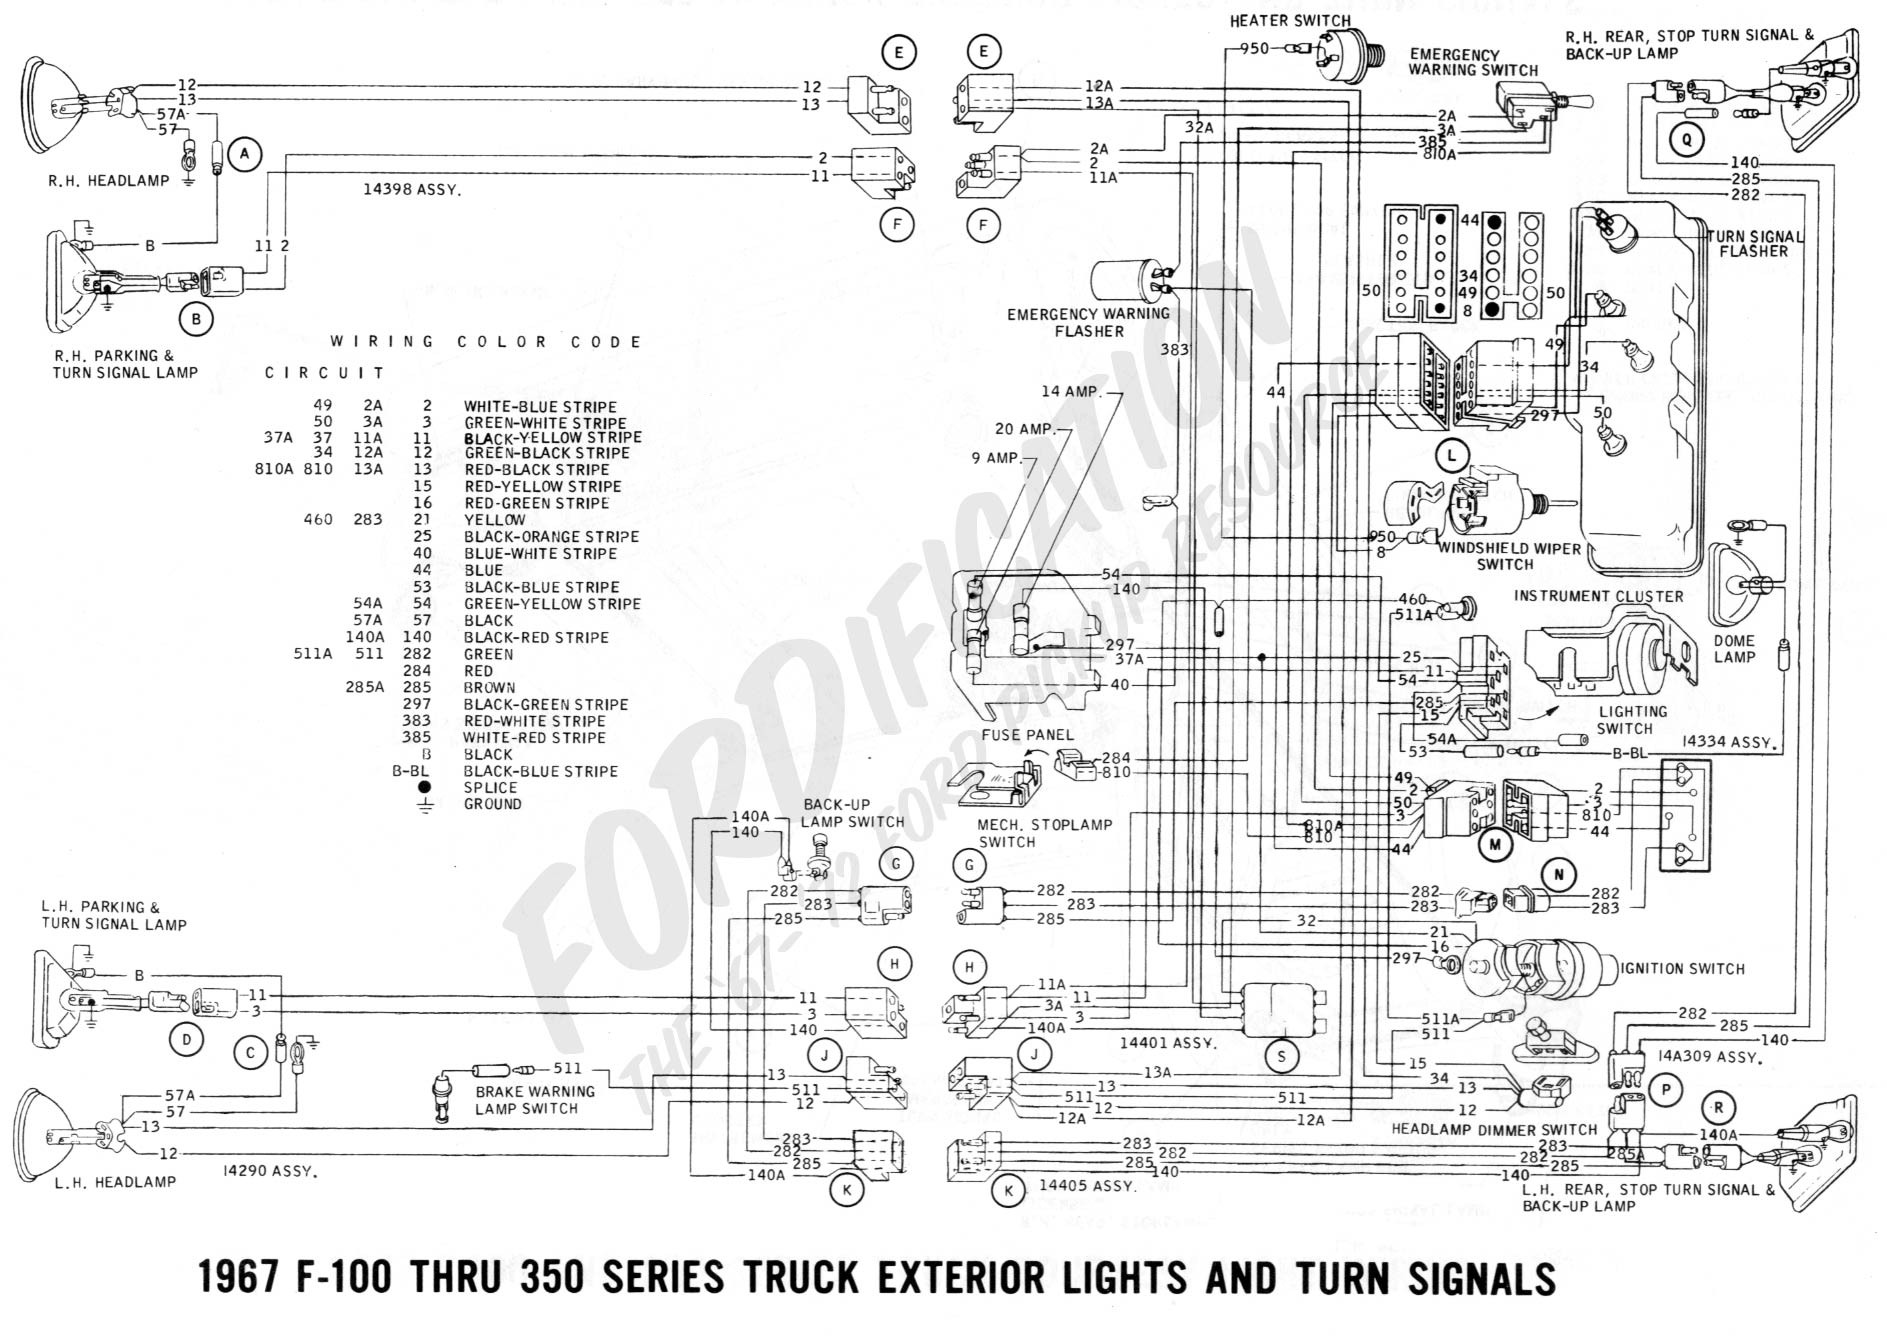 1974 mustang fuse panel diagram wiring diagrams the1974 mustang fuse panel diagram wiring diagrams fj 1974 mustang fuse panel diagram